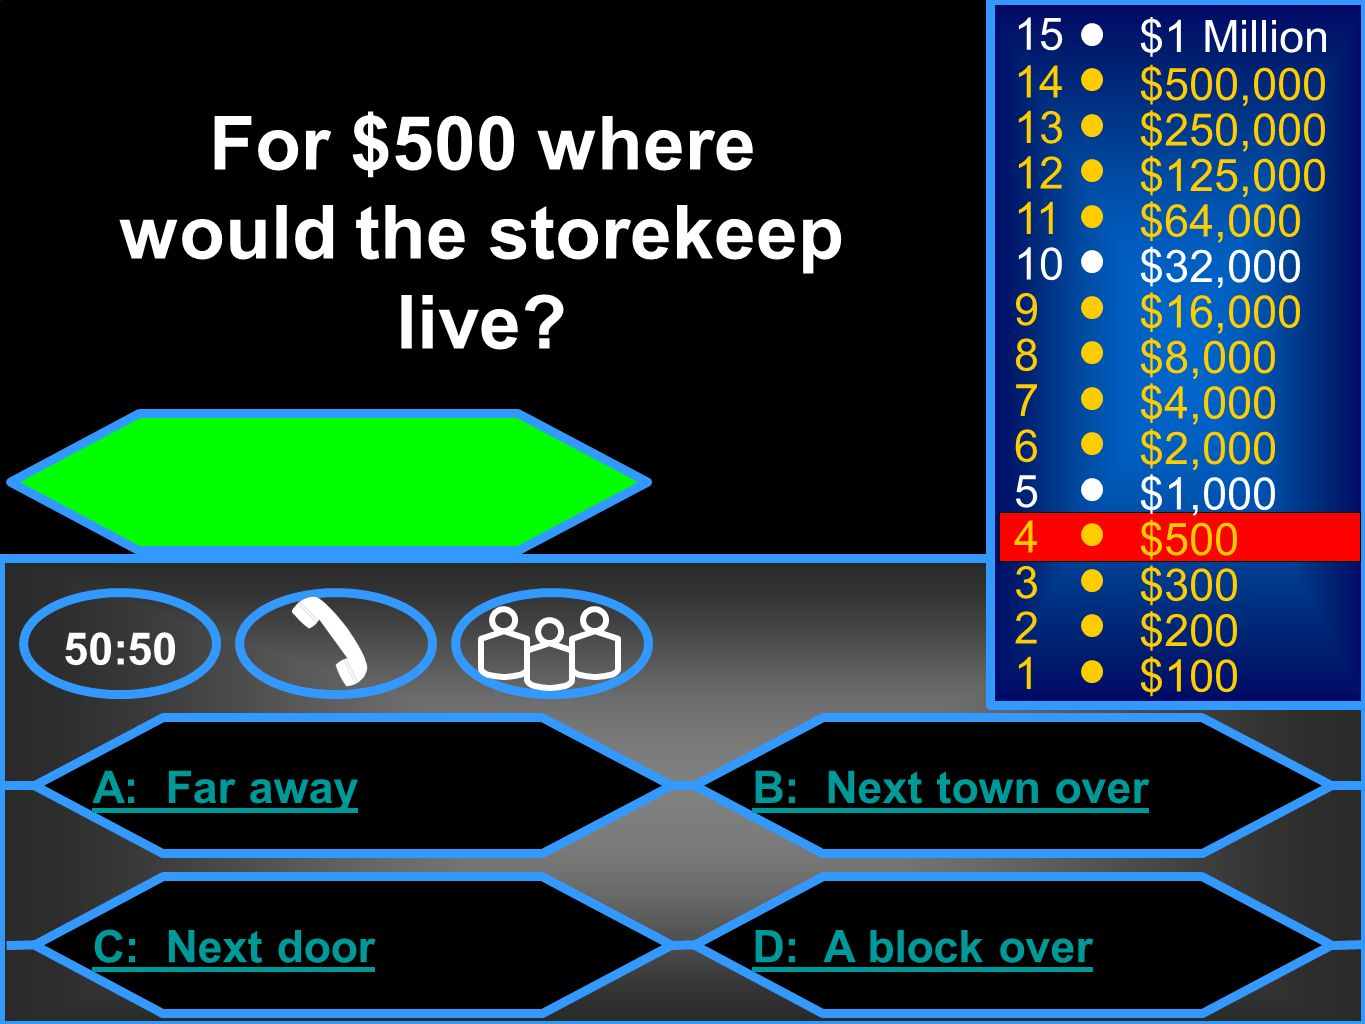 A: Far away C: Next door B: Next town over D: A block over 50: $1 Million $500,000 $250,000 $125,000 $64,000 $32,000 $16,000 $8,000 $4,000 $2,000 $1,000 $500 $300 $200 $100 For $500 where would the storekeep live